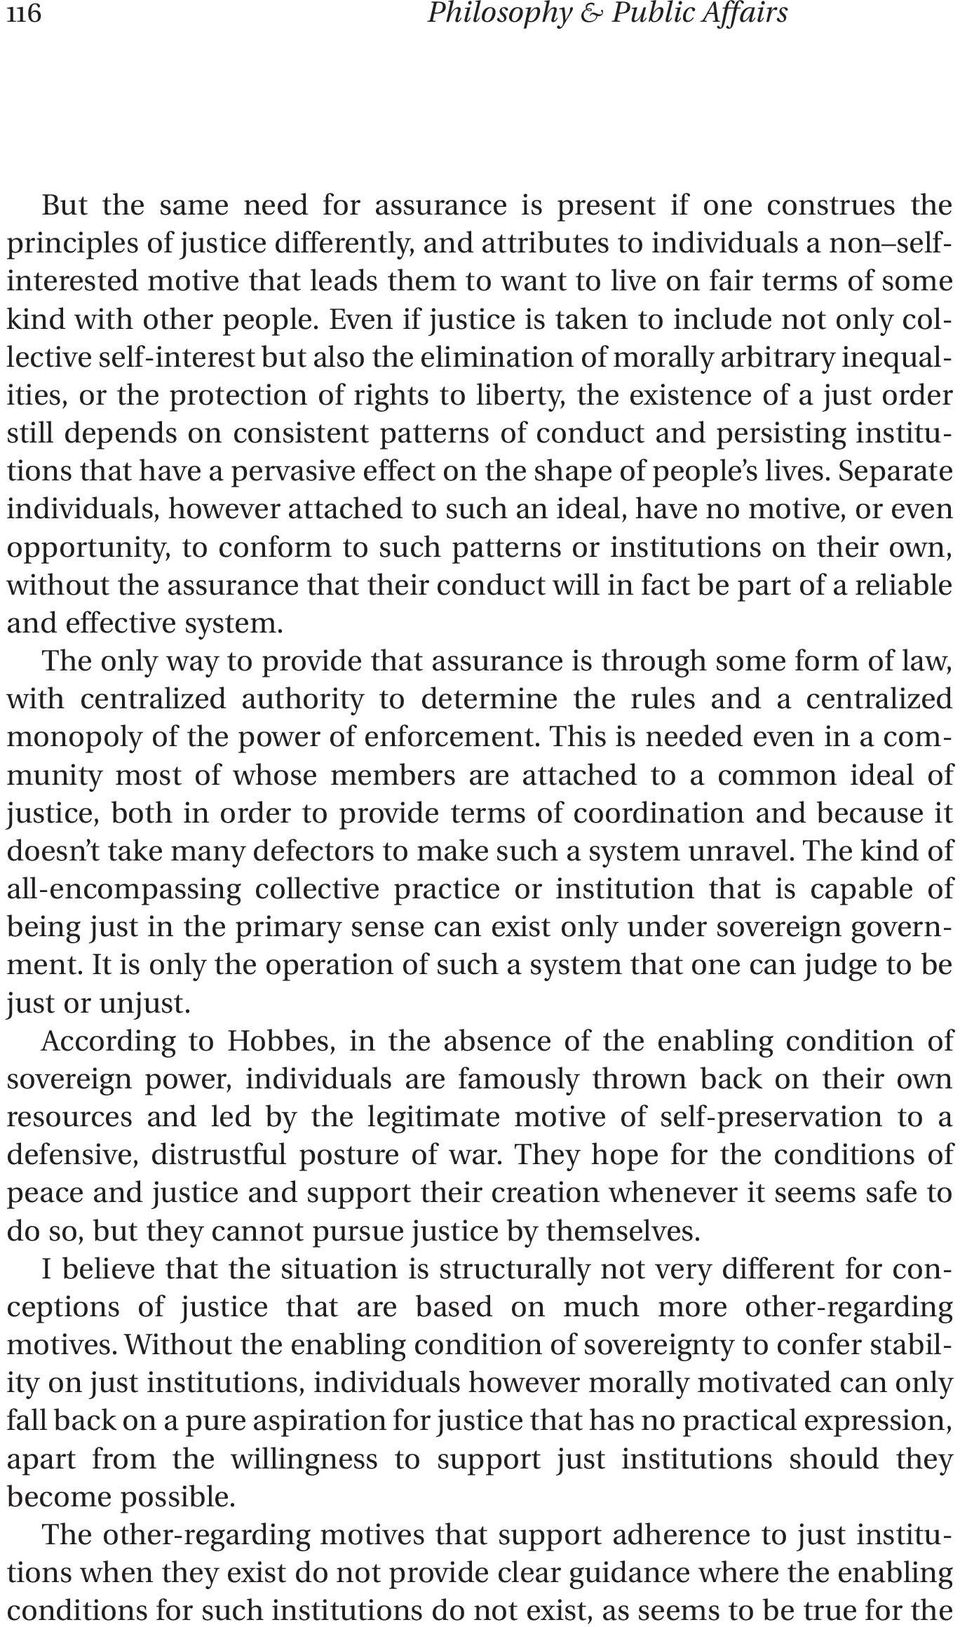 Even if justice is taken to include not only collective self-interest but also the elimination of morally arbitrary inequalities, or the protection of rights to liberty, the existence of a just order